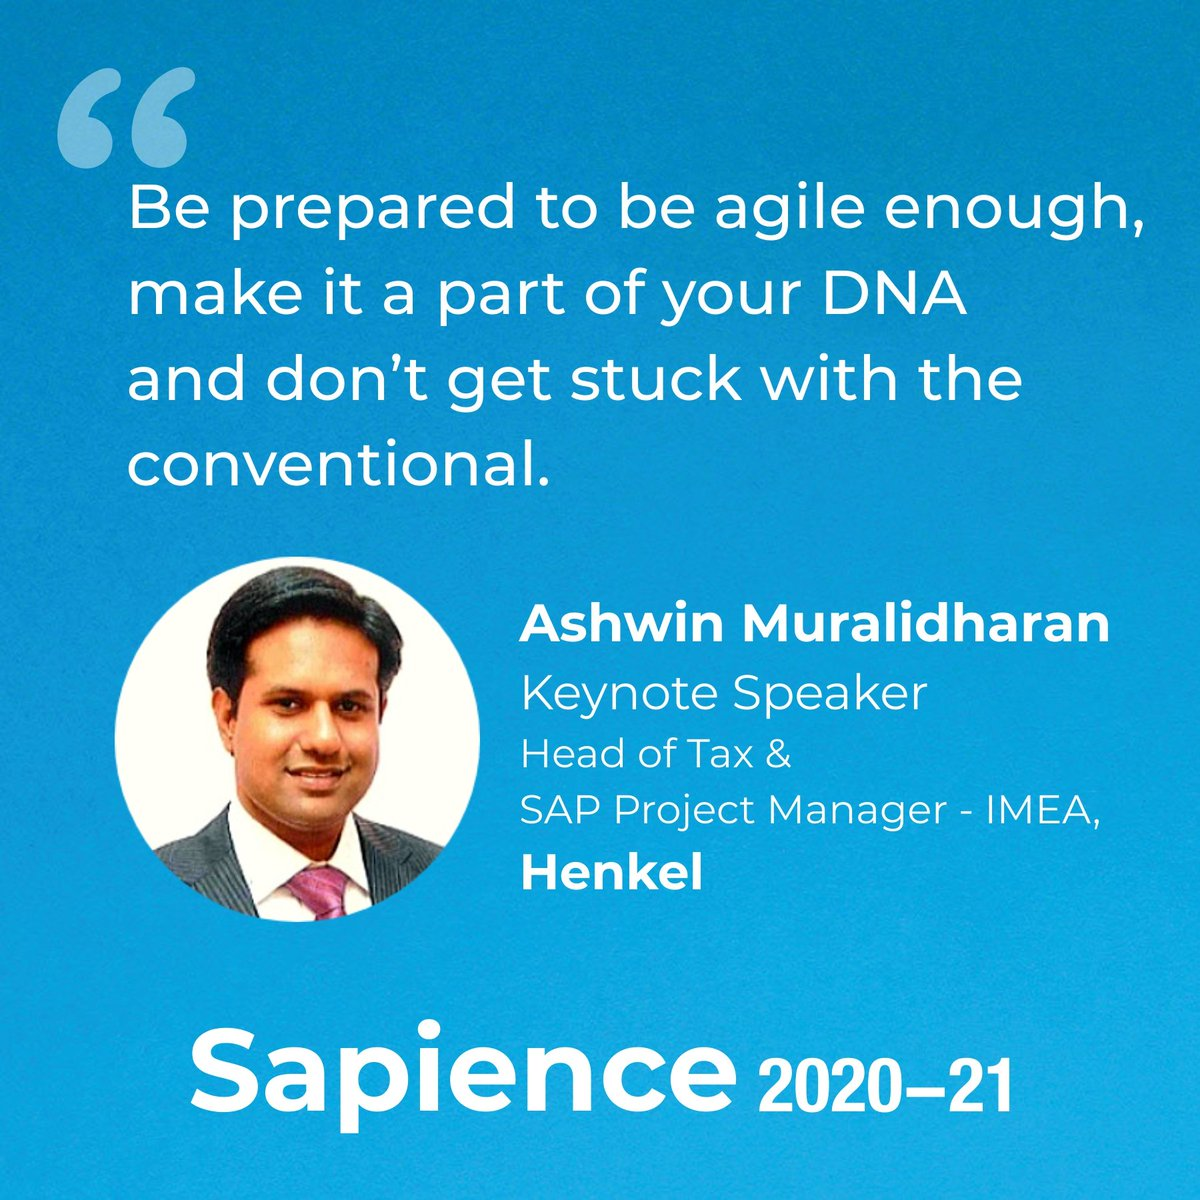 Honoured to have Mr. Ashwin Muralidharan, Head of Tax & SAP Project Manager-IMEA, Henkel, as the #keynote #speaker, addressing the #newnormal of 'Business as Usual' in inauguration of #Sapience2020  #GreatLakesGurgaon #InnovationInCrisis #BSchools #IndustryTalk #businessstrategy